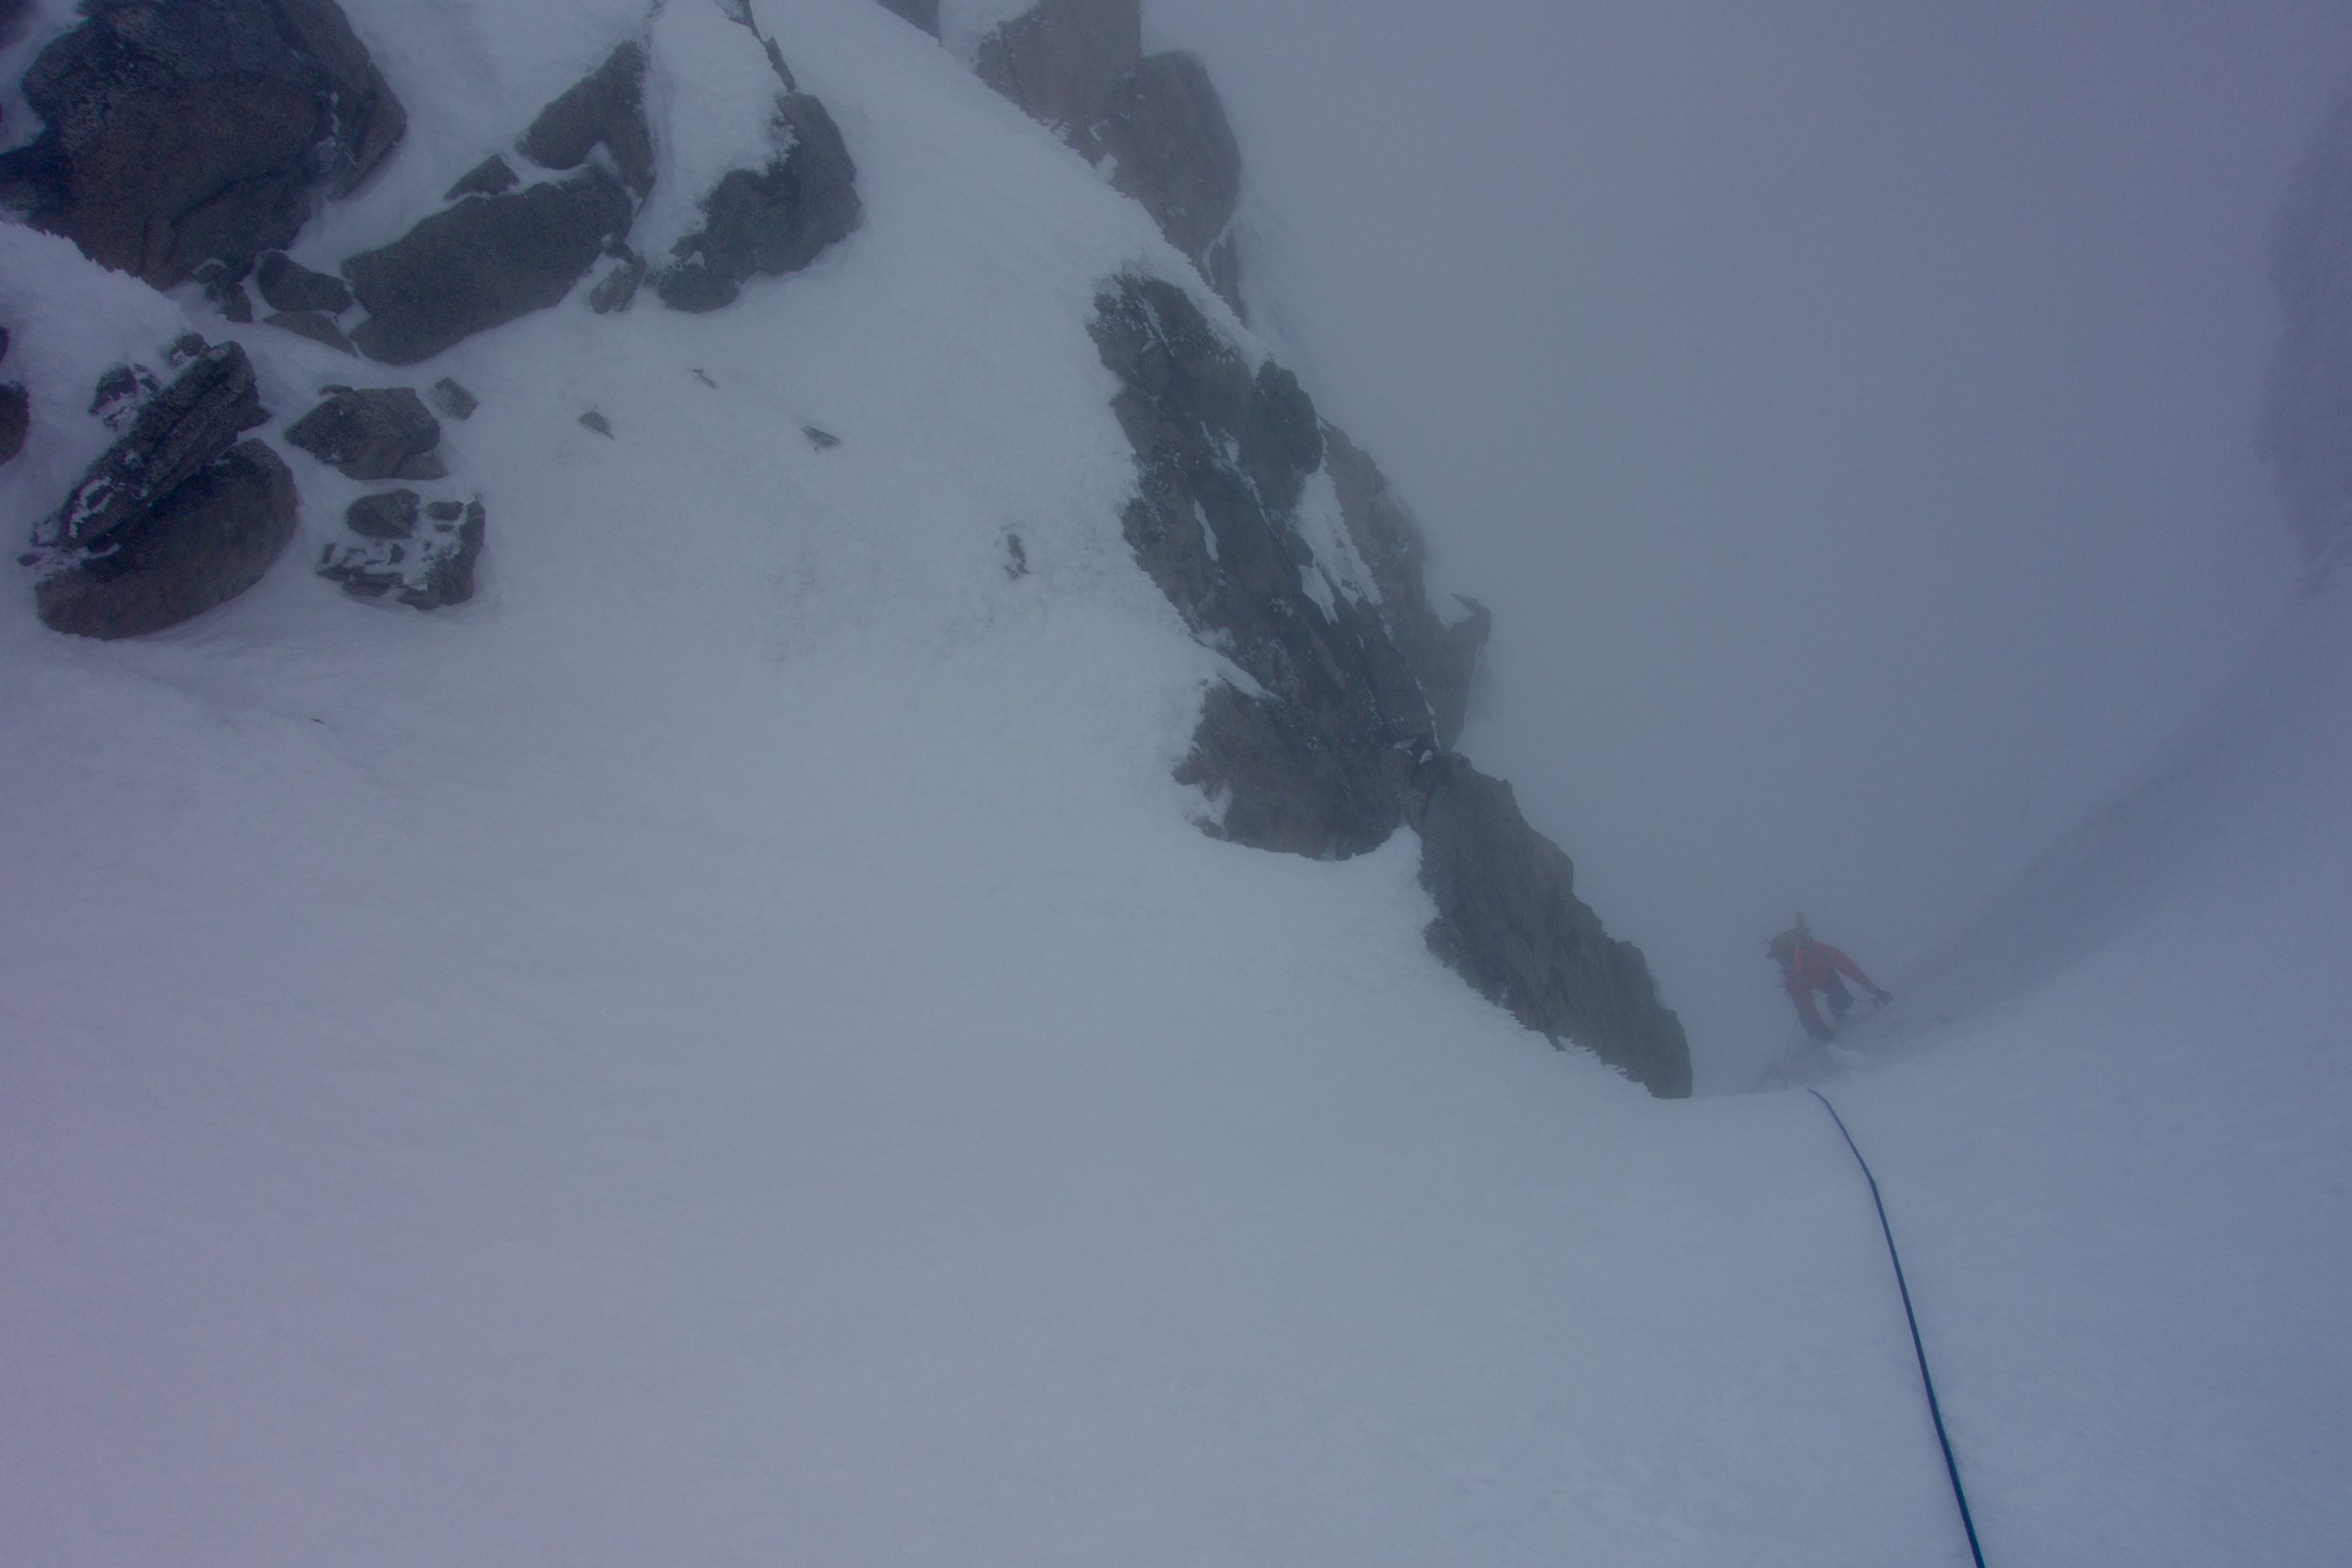 Finishing the couloir